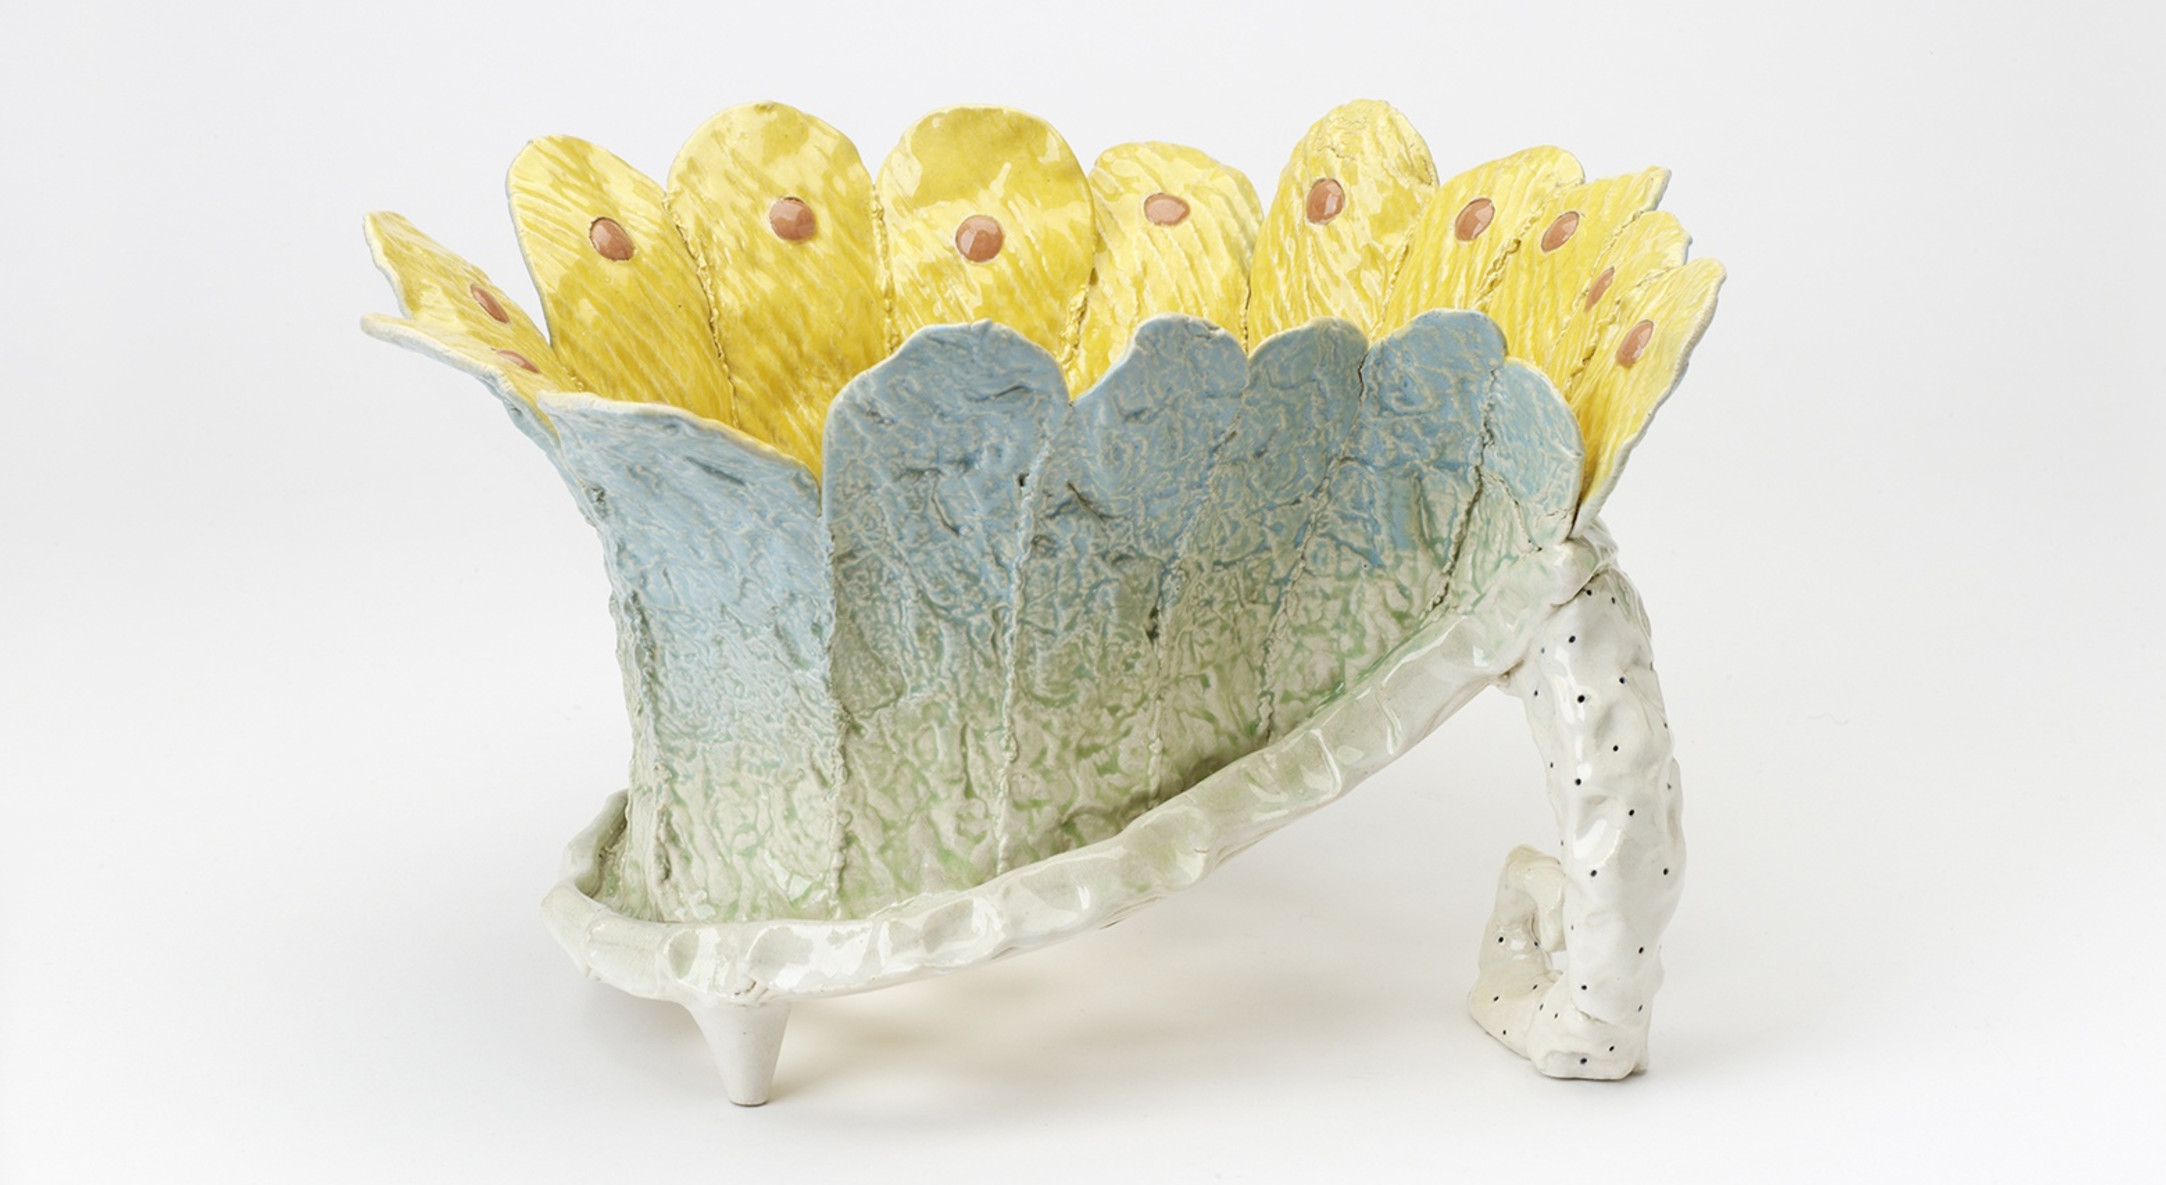 Richard Slee, Fruit Bowl, 1982, P313. Photo: Relic Imaging Ltd, courtesy of the Crafts Council.